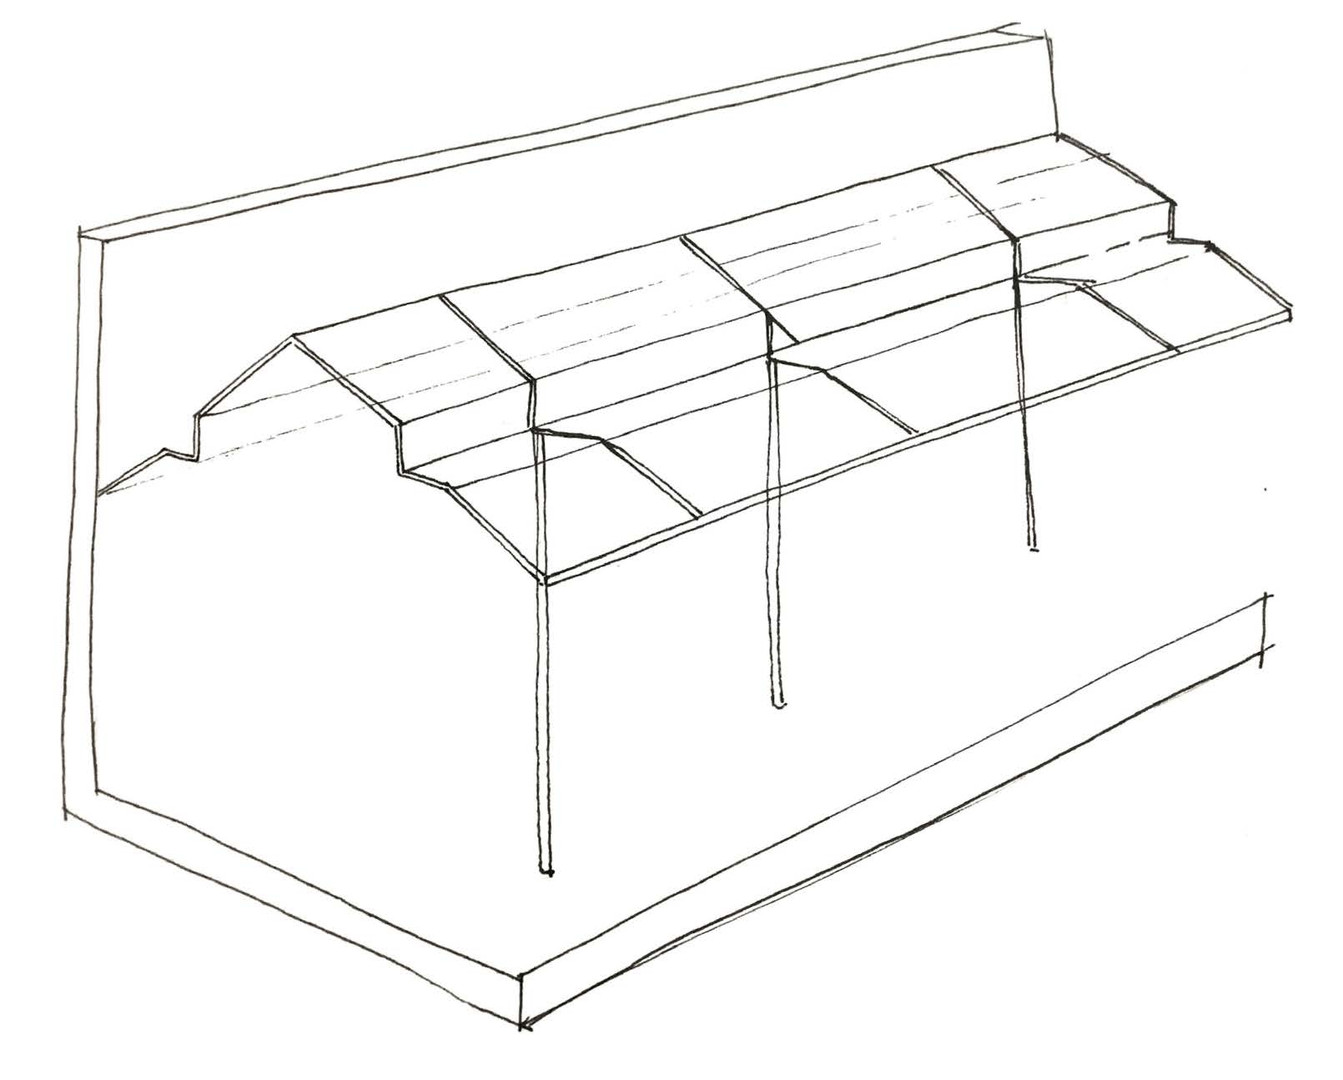 Initial Drawing of the Ceiling